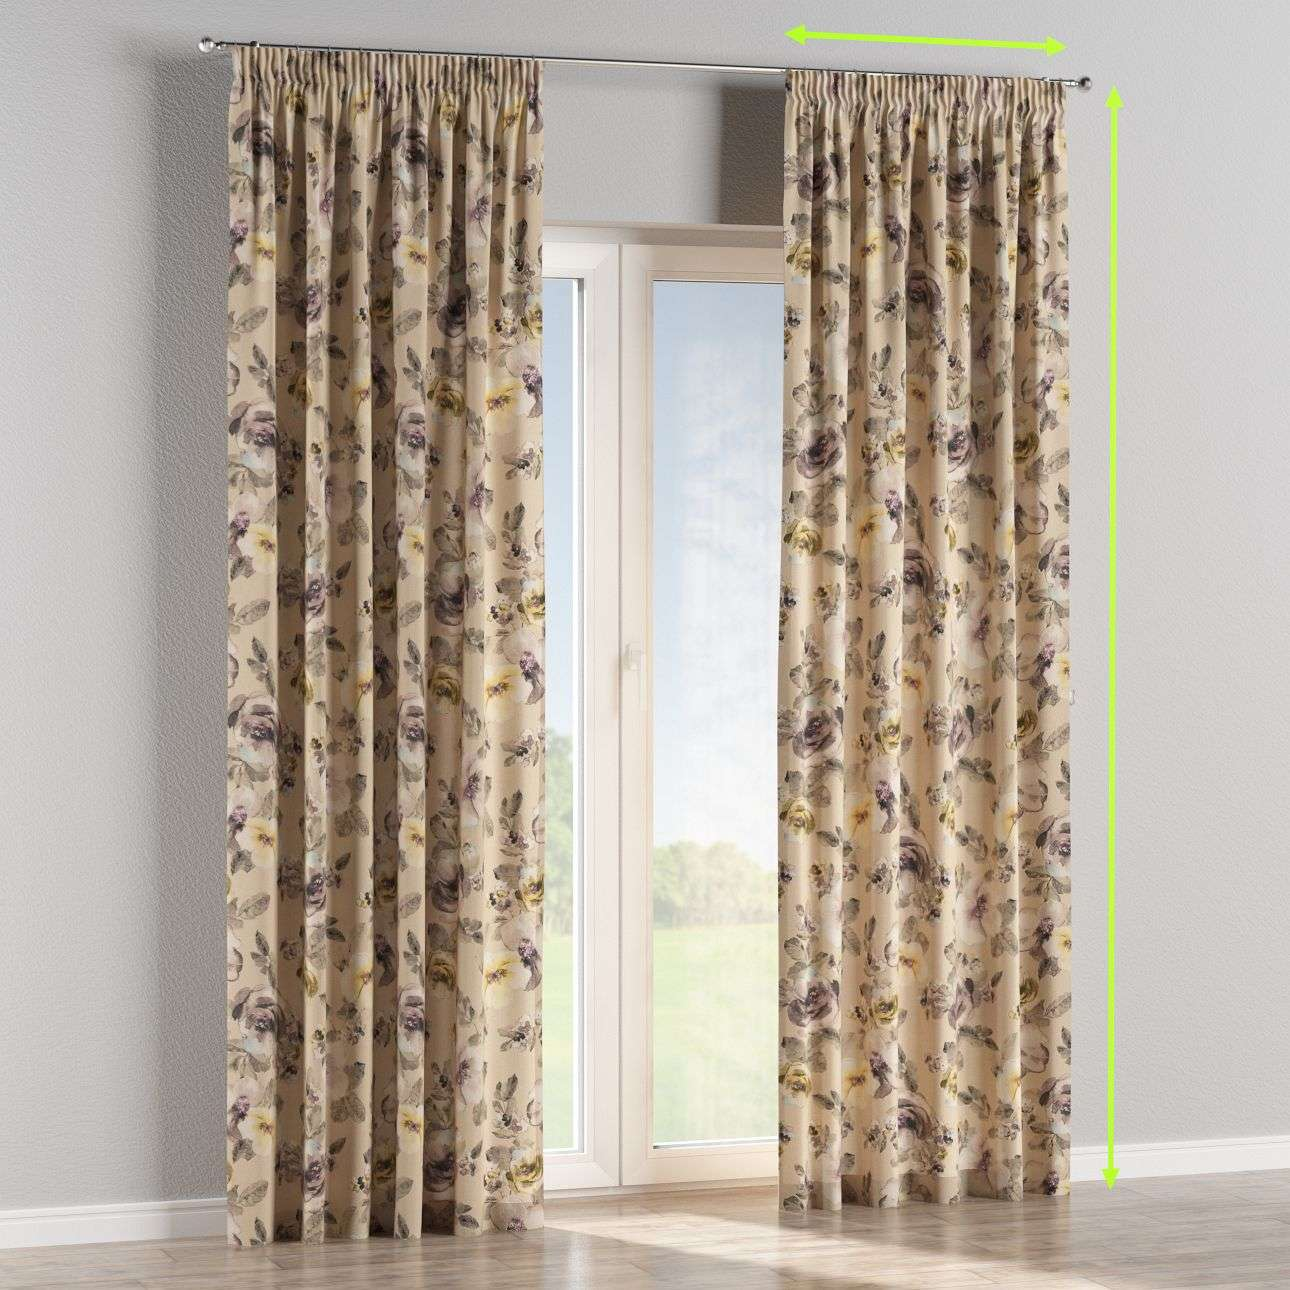 Pencil pleat curtains in collection Londres, fabric: 140-44